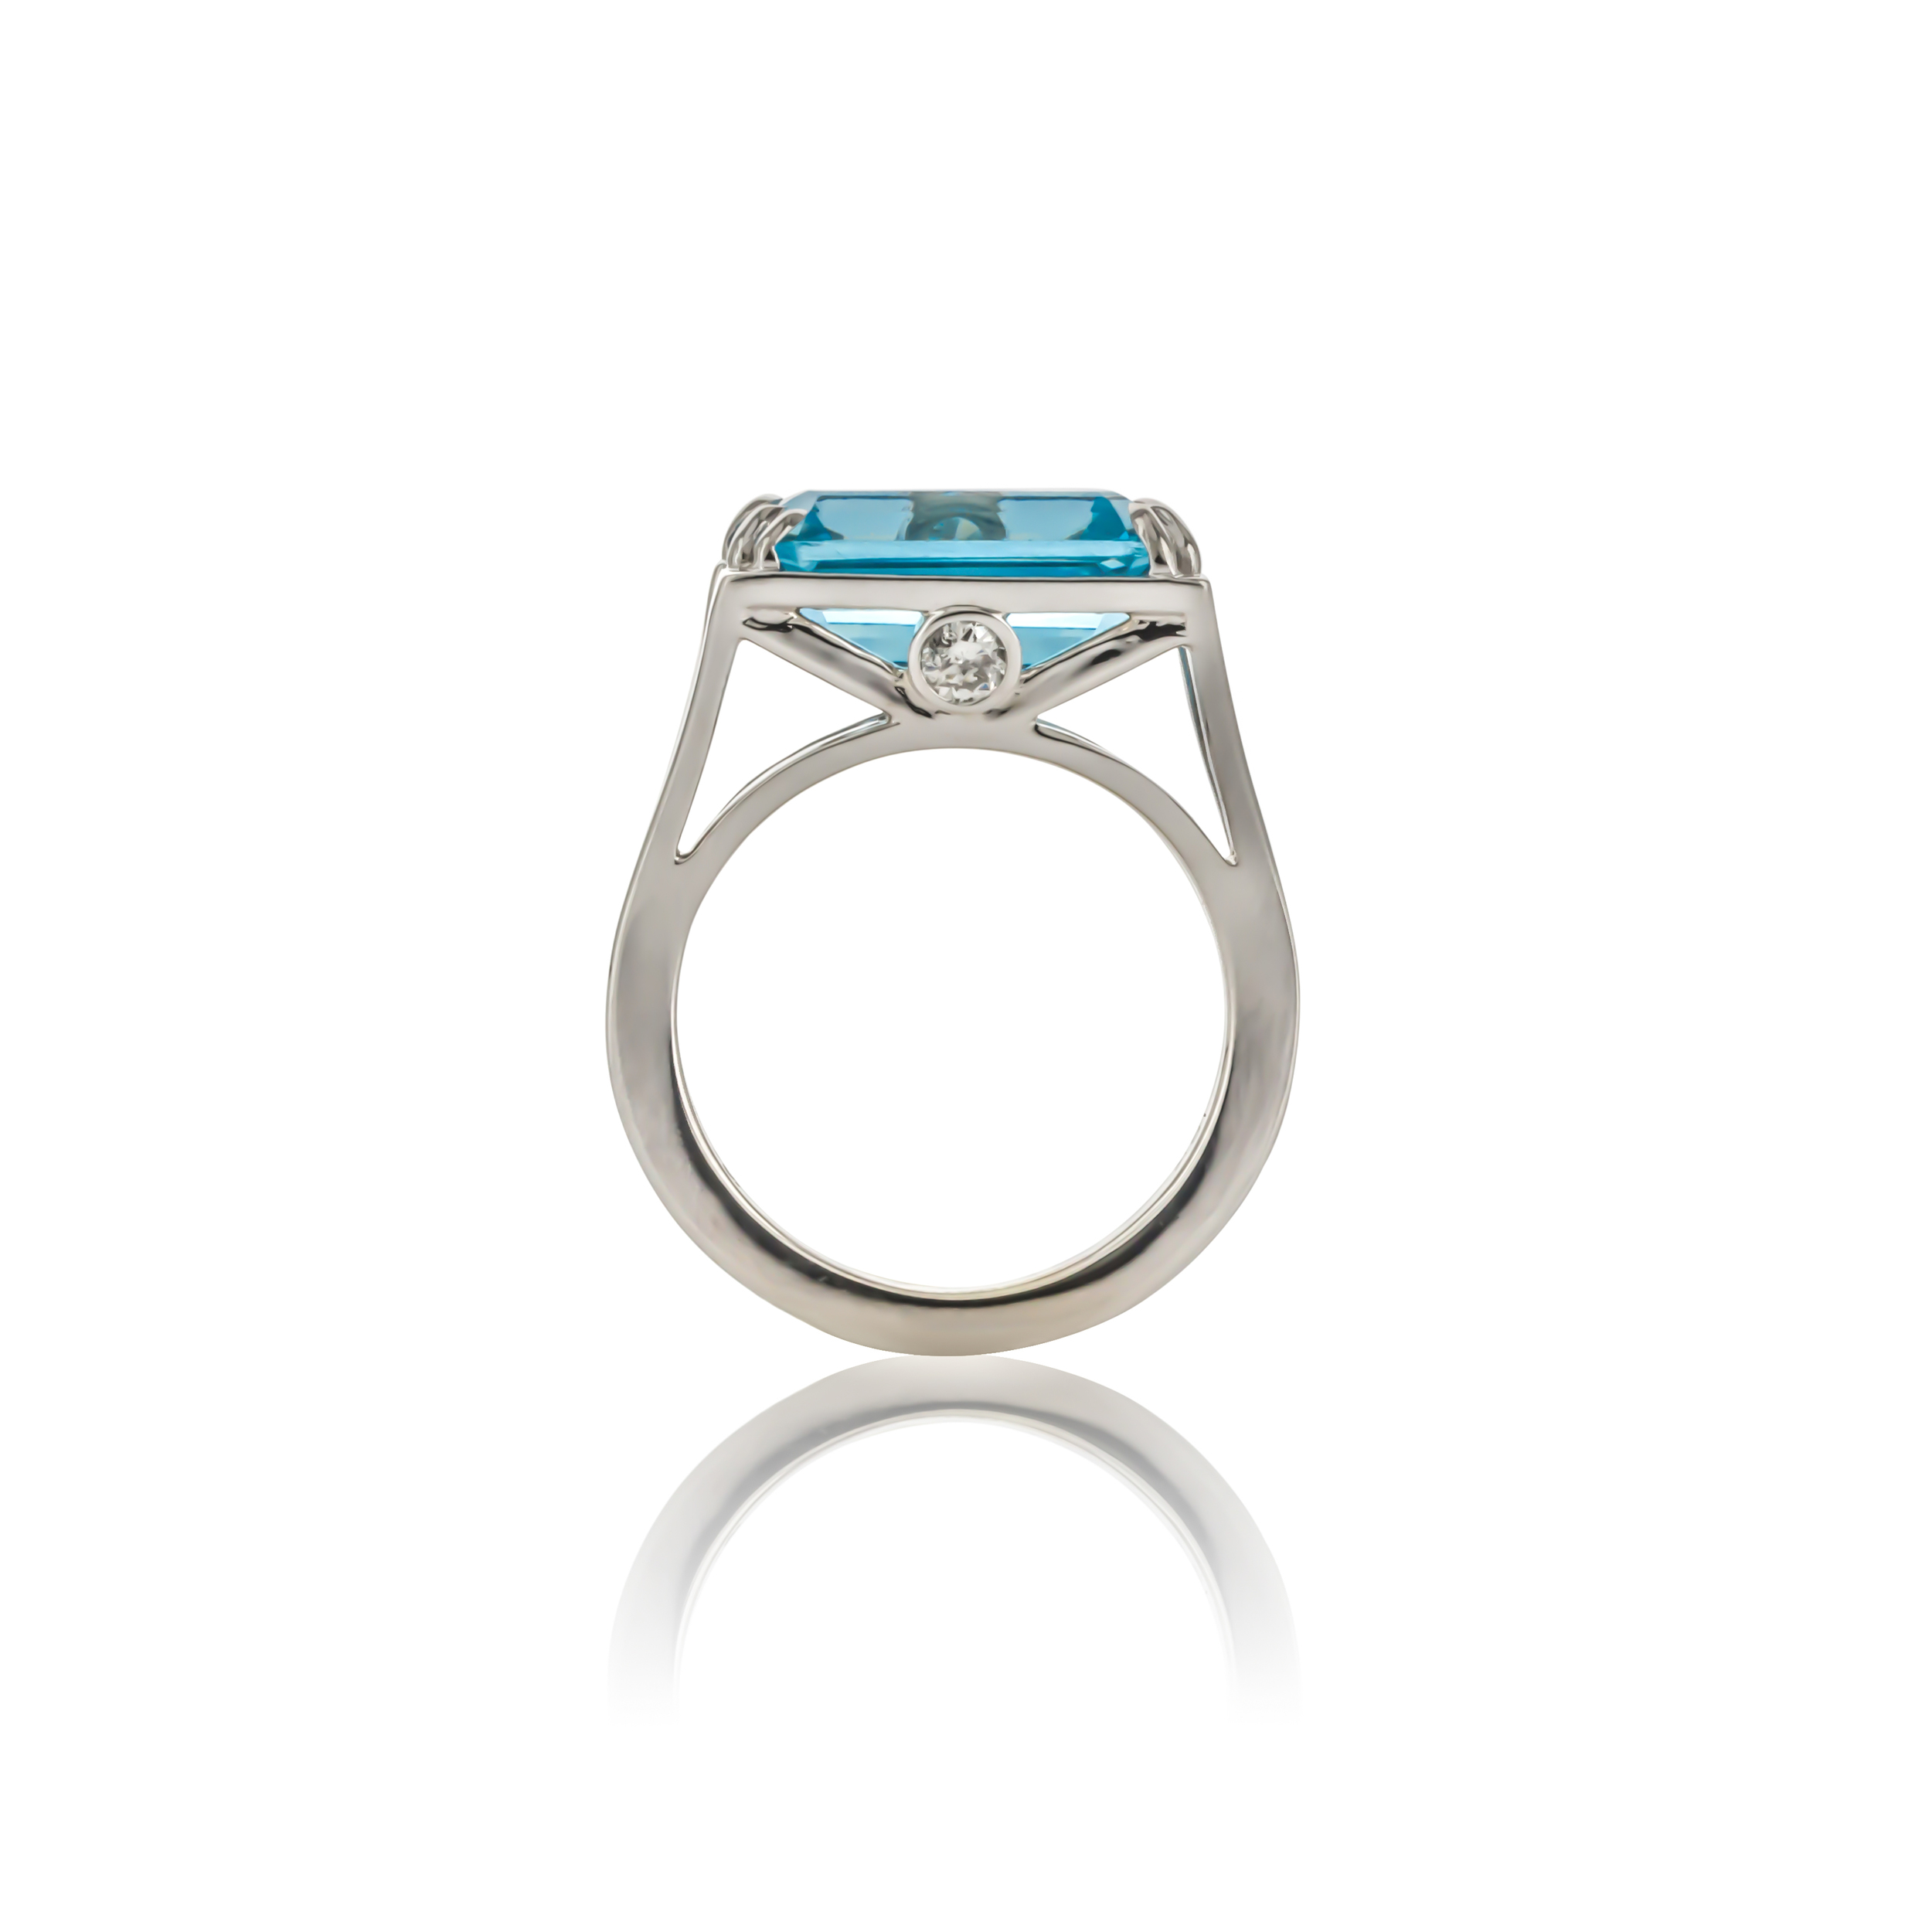 CUSTOM BLUE TOPAZ AND DIAMOND RING SET IN 18K WHITE GOLD